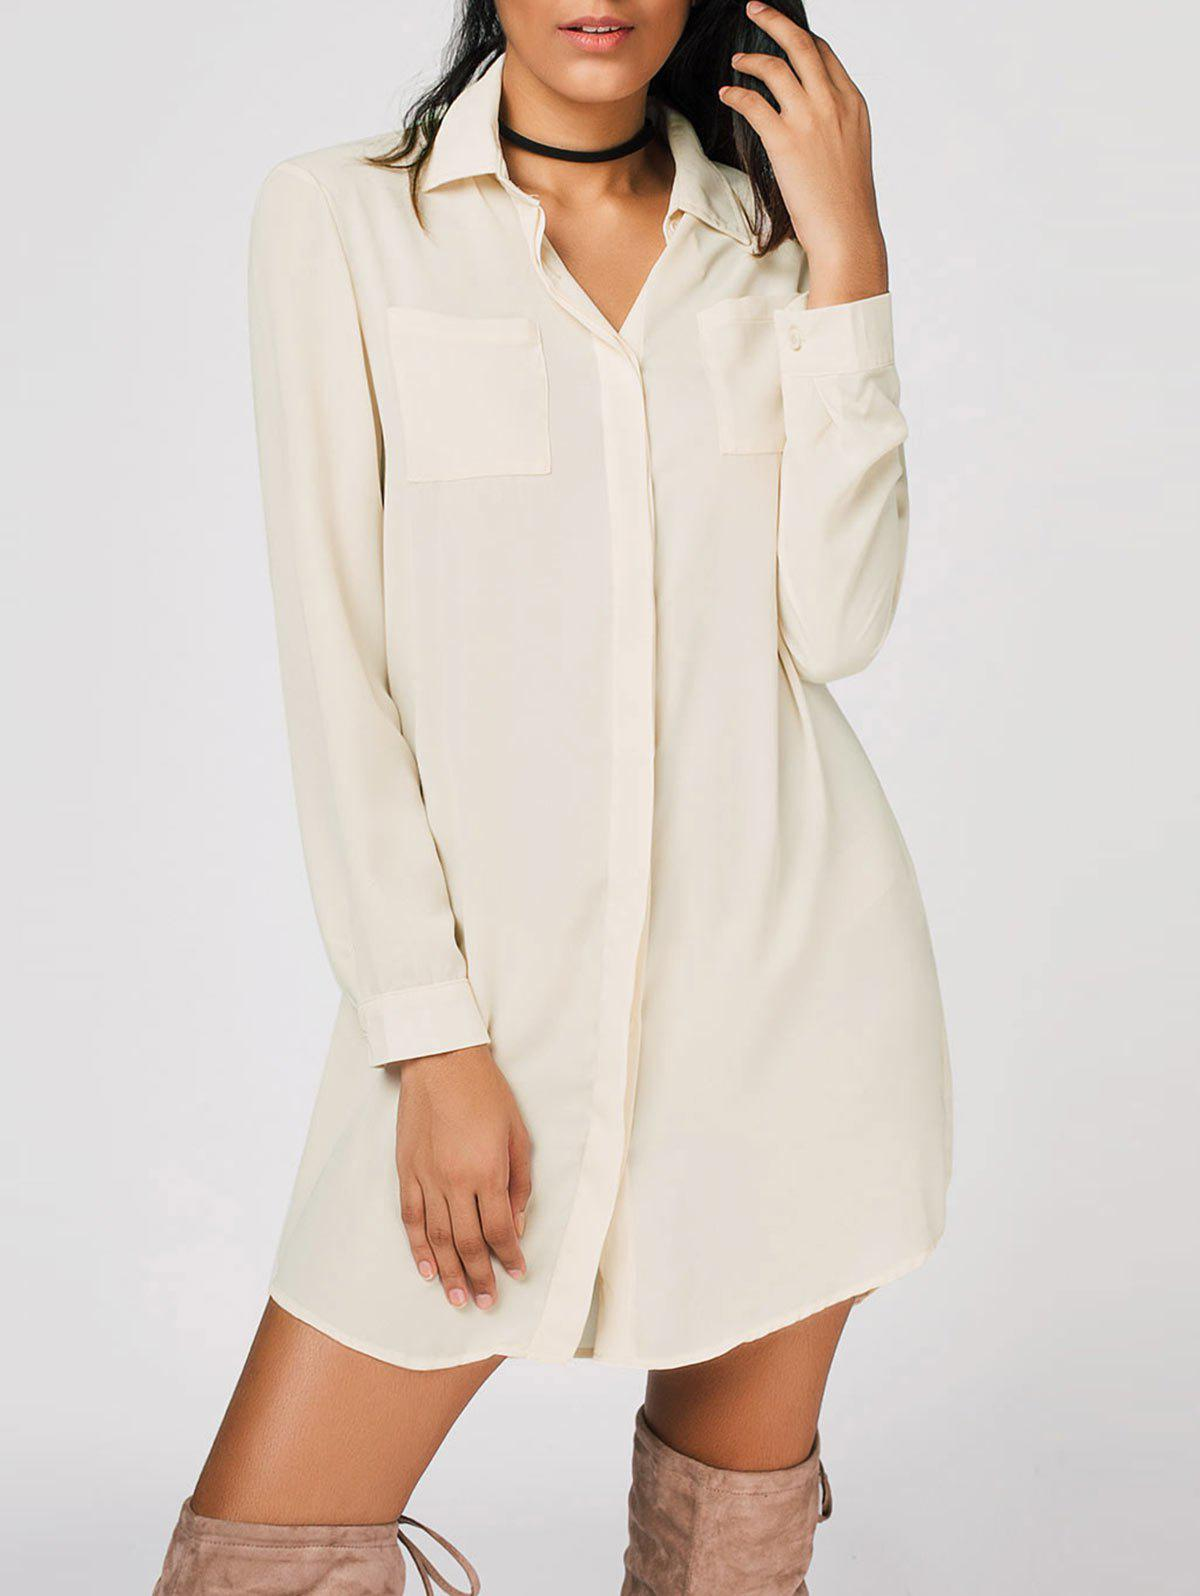 Buy button shirt casual mini dress white l at zaful Buy white dress shirt